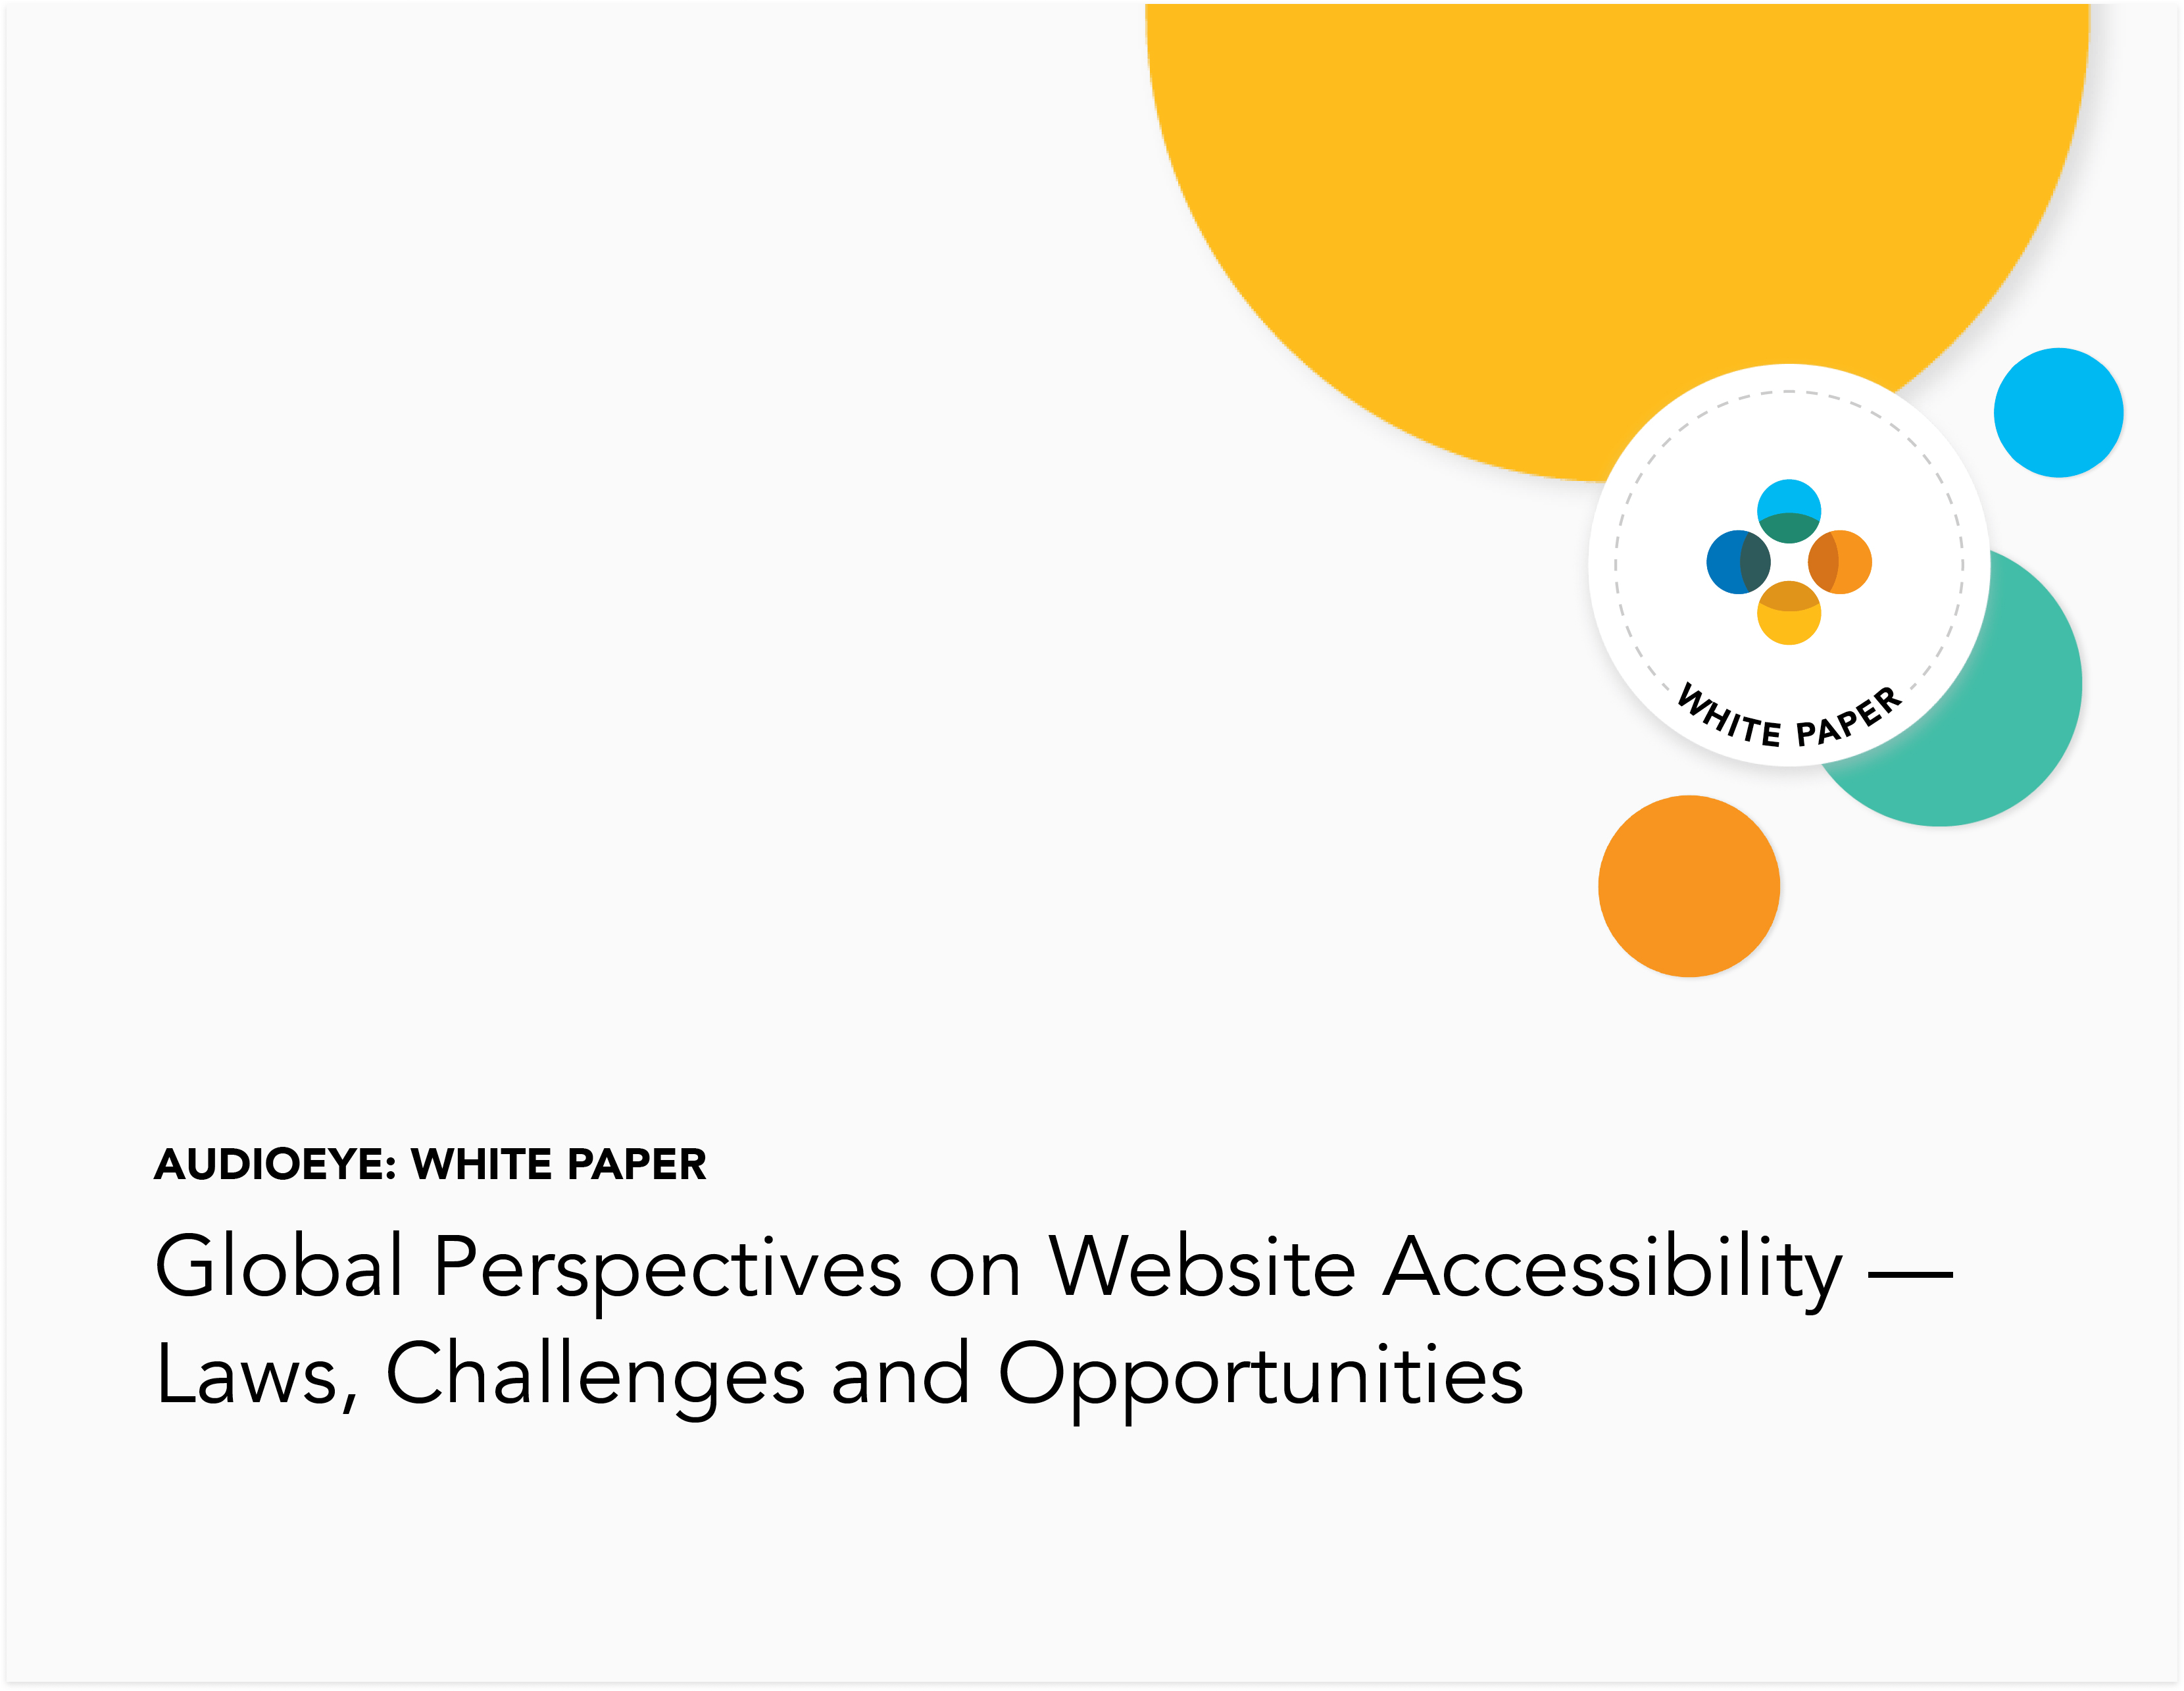 Global Perspectives on Website Accessibility — Laws, Challenges and Opportunities White Paper Cover